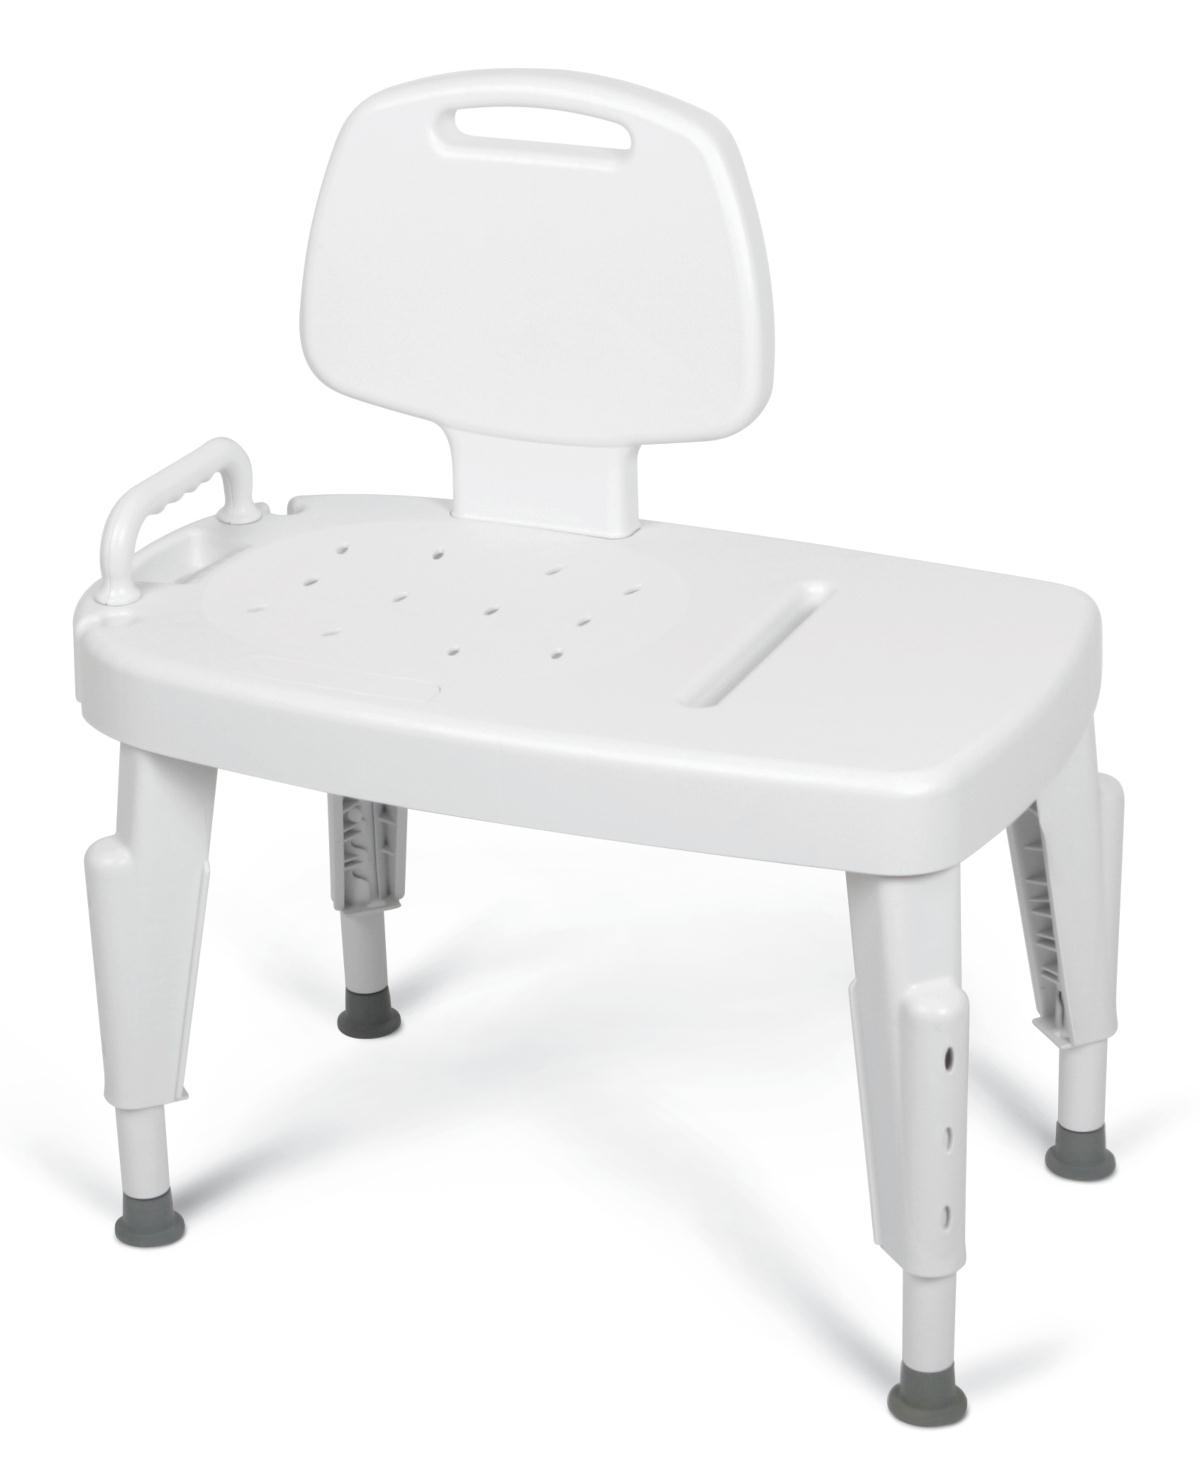 Walmart Tub Transfer Bench | Medical Bath Tub Chairs | Transfer Tub Bench